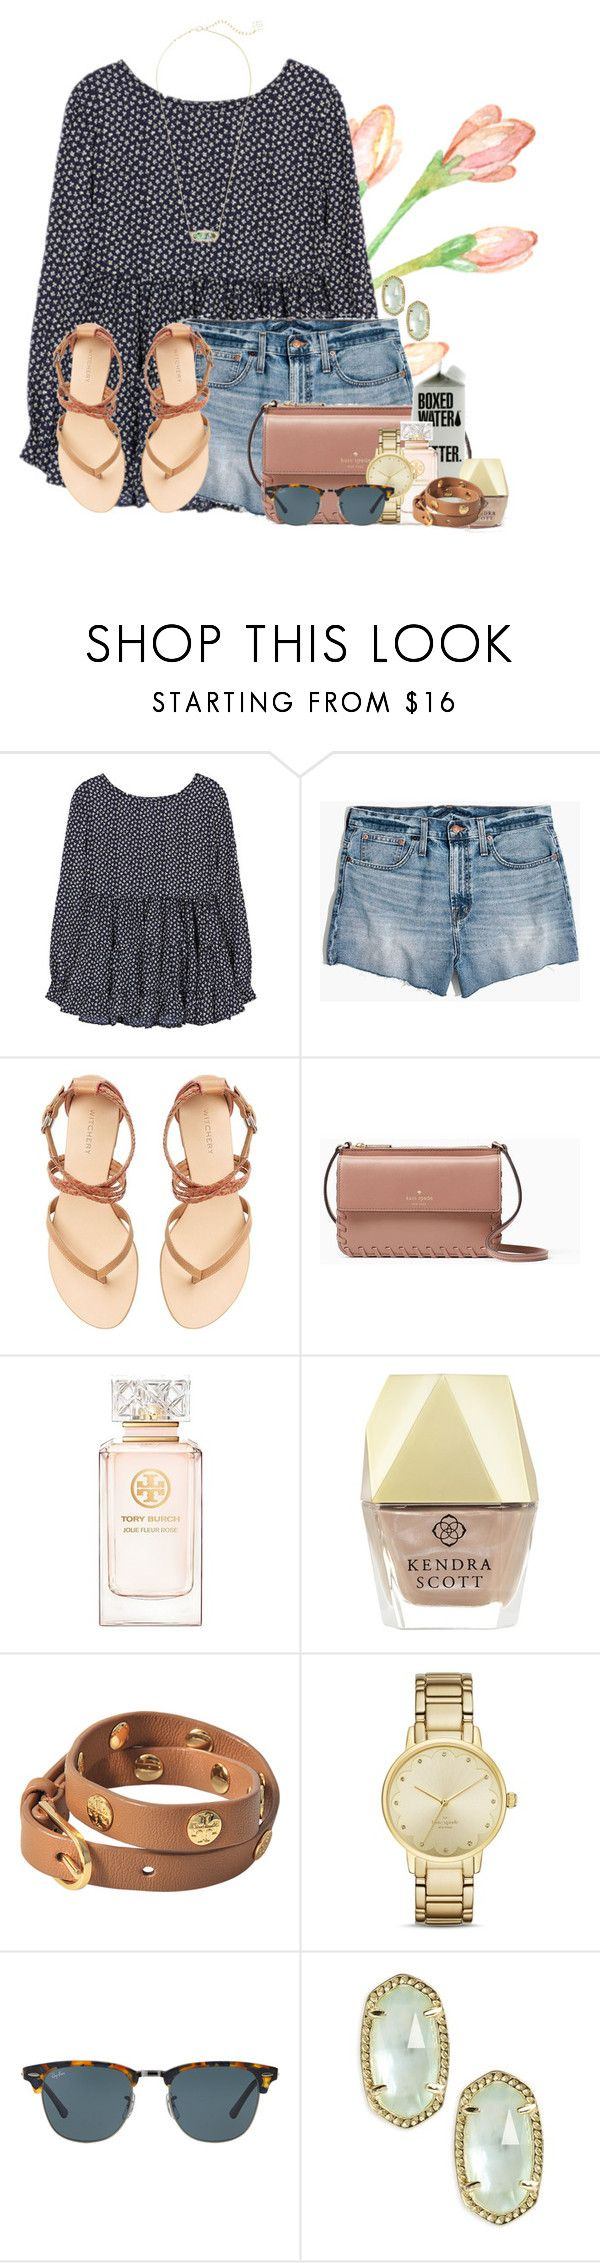 """Had a great time shopping! Should I do a mini haul"" by flroasburn ❤ liked on Polyvore featuring Madewell, Witchery, Kate Spade, Tory Burch, Kendra Scott and Ray-Ban"